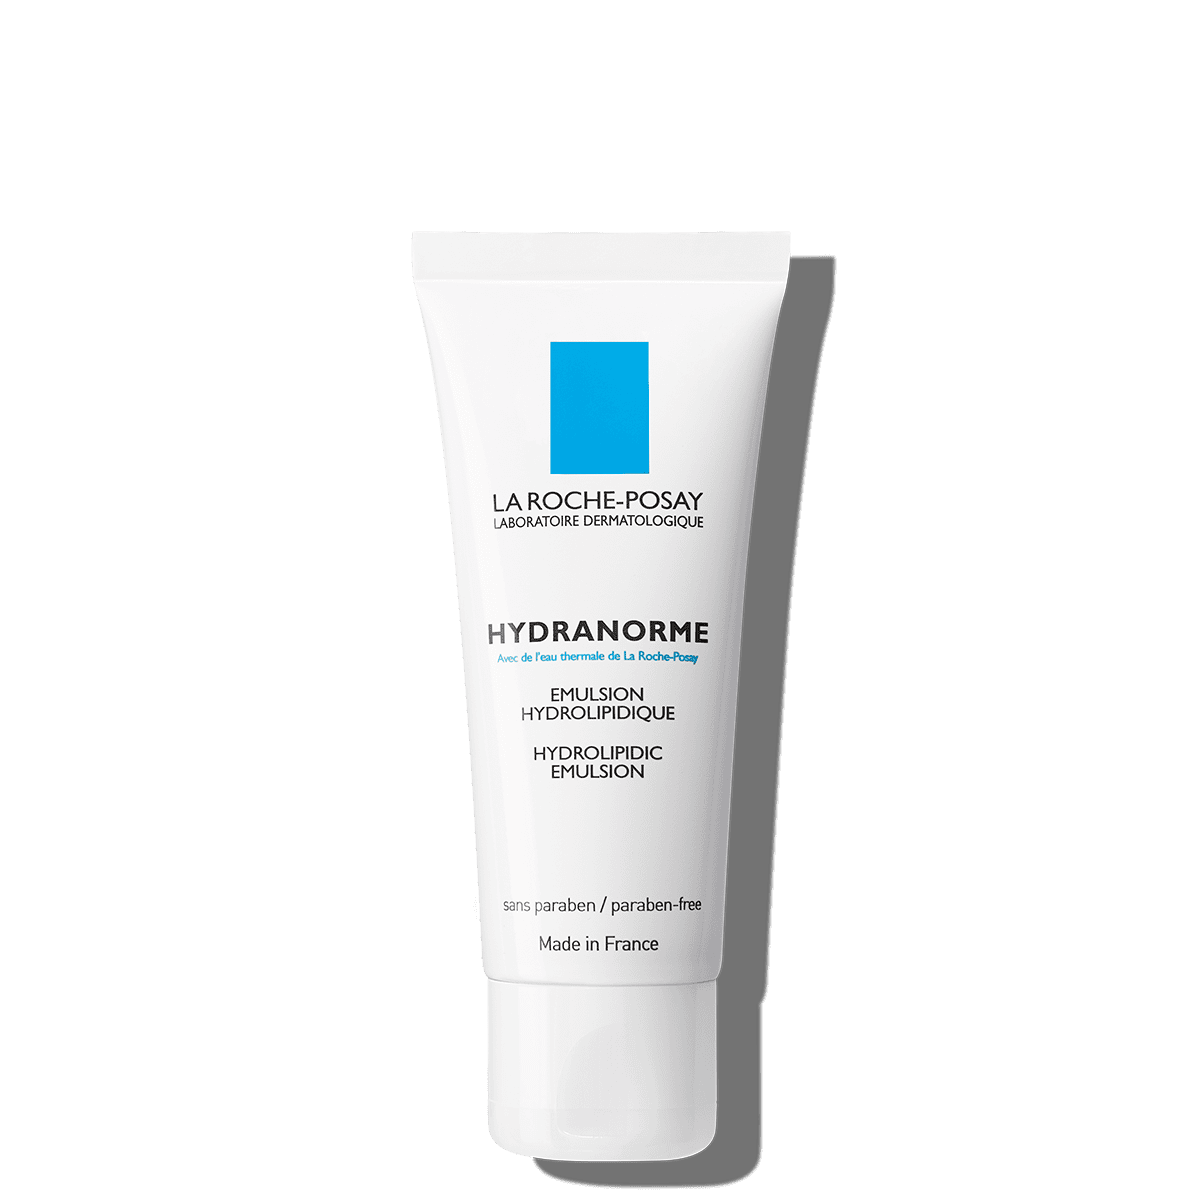 La Roche Posay Face Care Hydranorme Hydrolipidic Emulsion 40ml 3433422